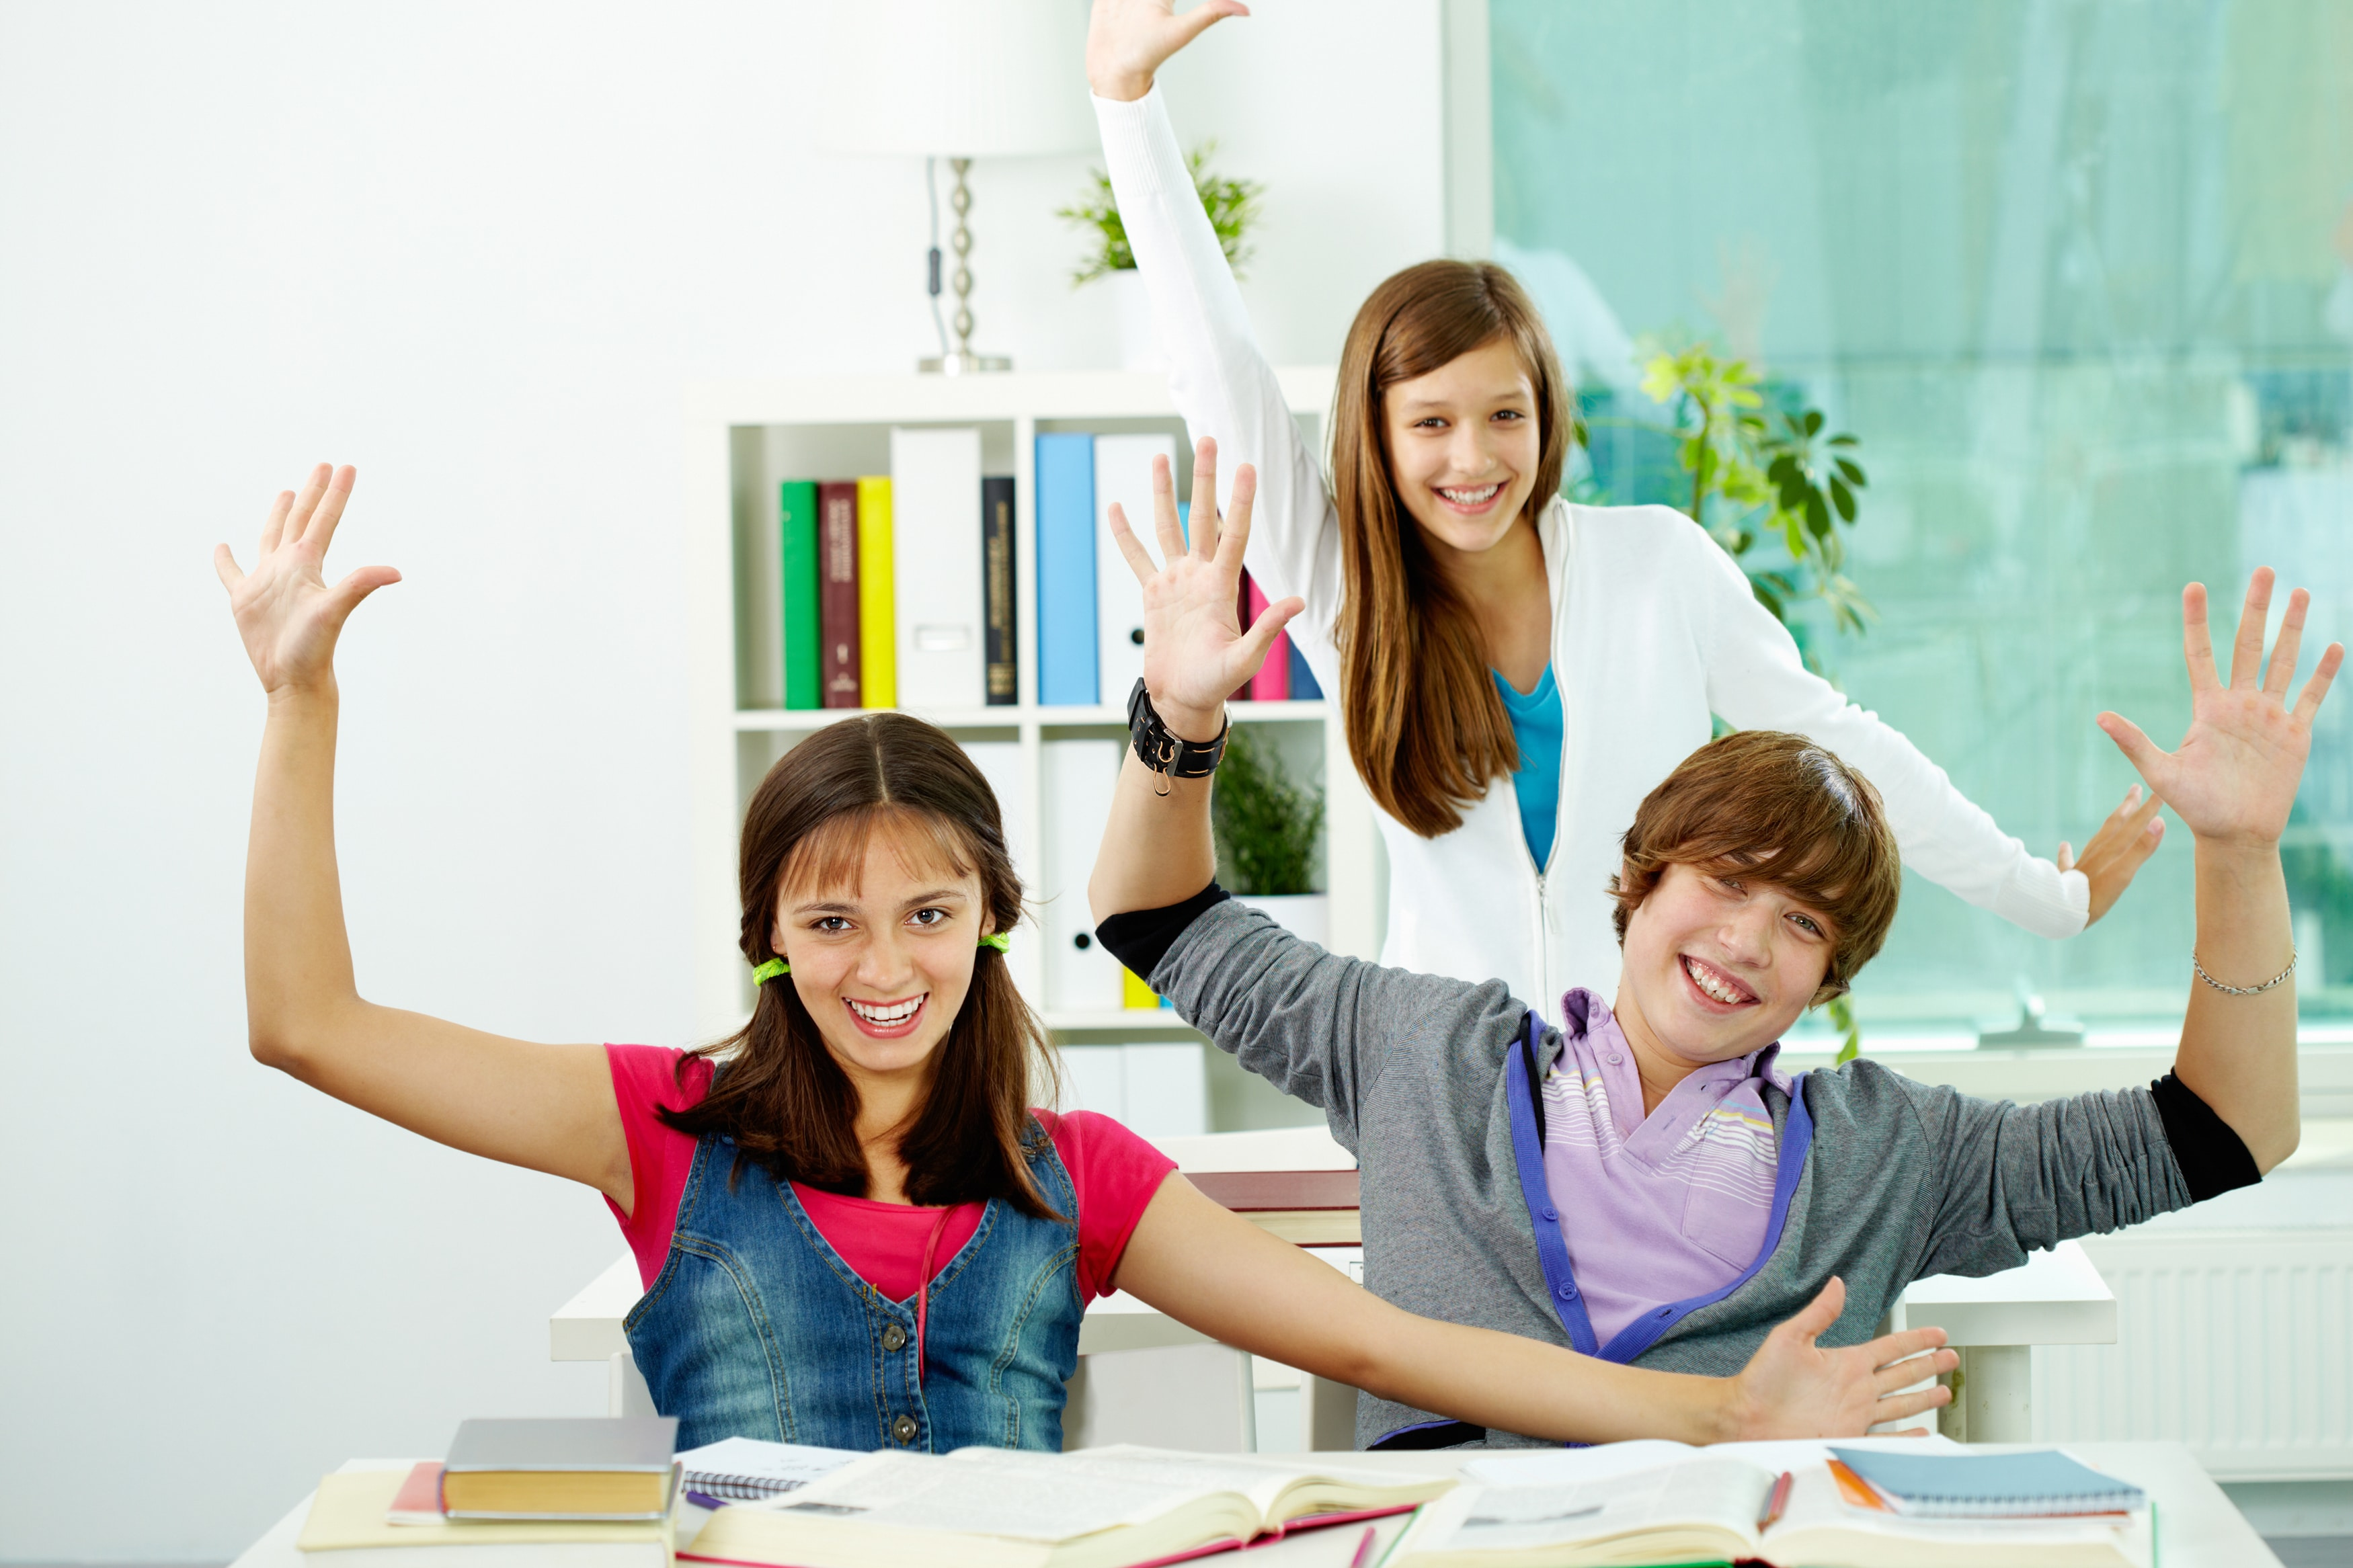 Seven Surefire Ways to Relate Classroom Material to the Student's World